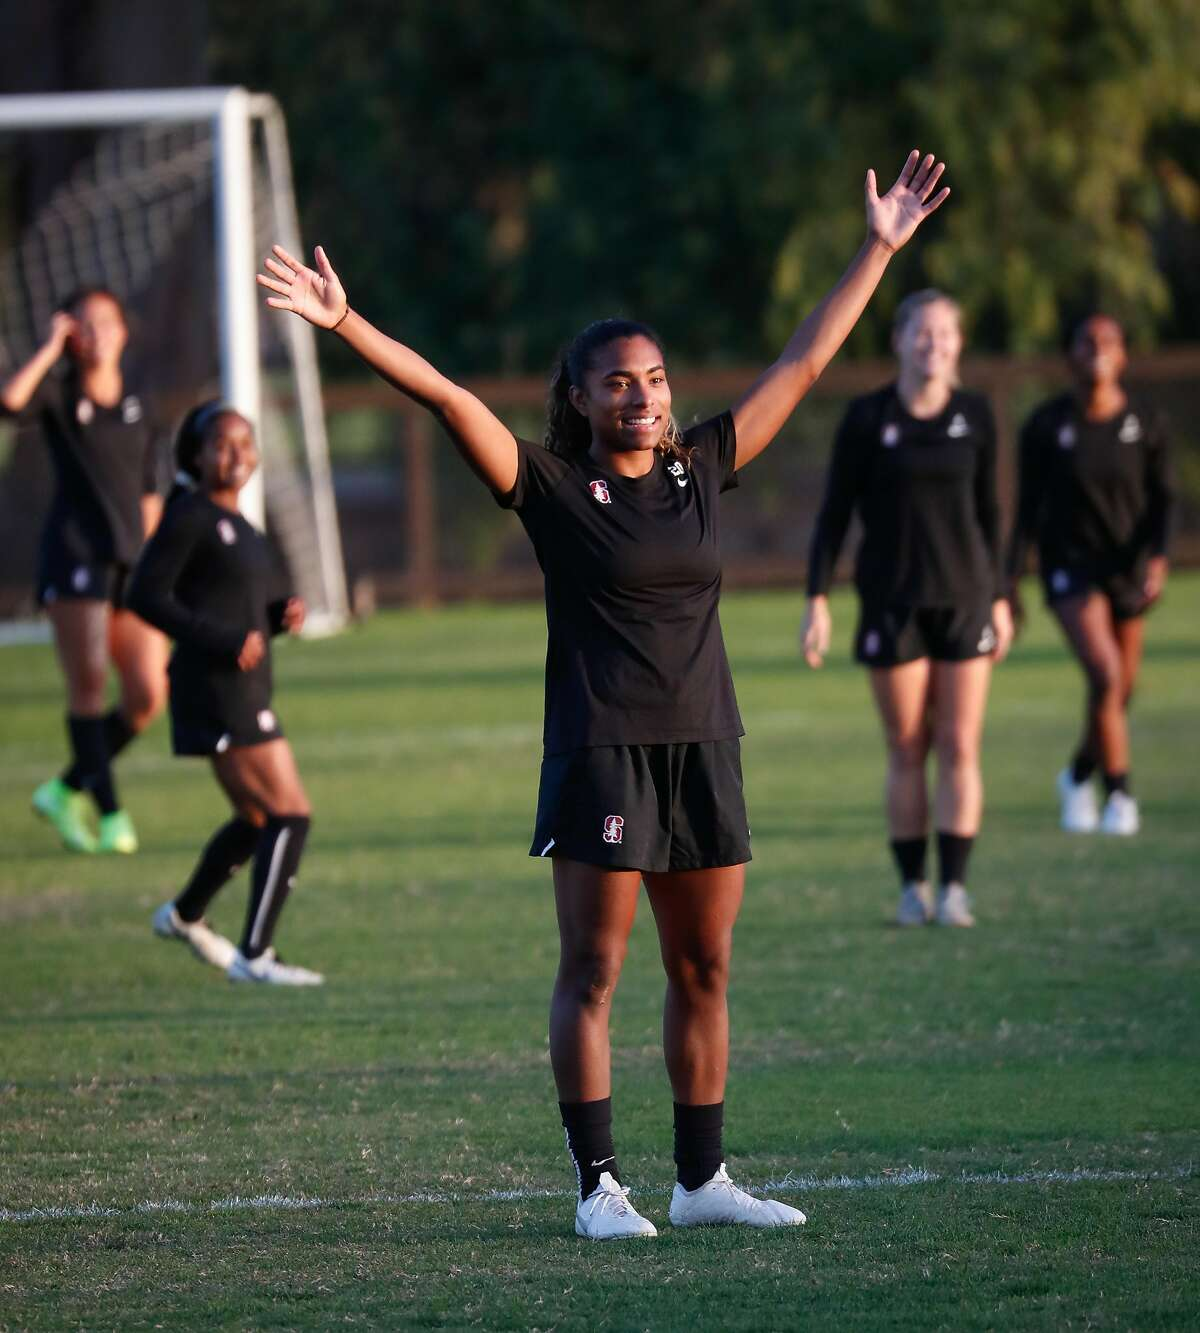 Stanford soccer player Catarina Macario practices with her team at Stanford University on Thursday, Nov. 21, 2019, in Stanford, Calif.